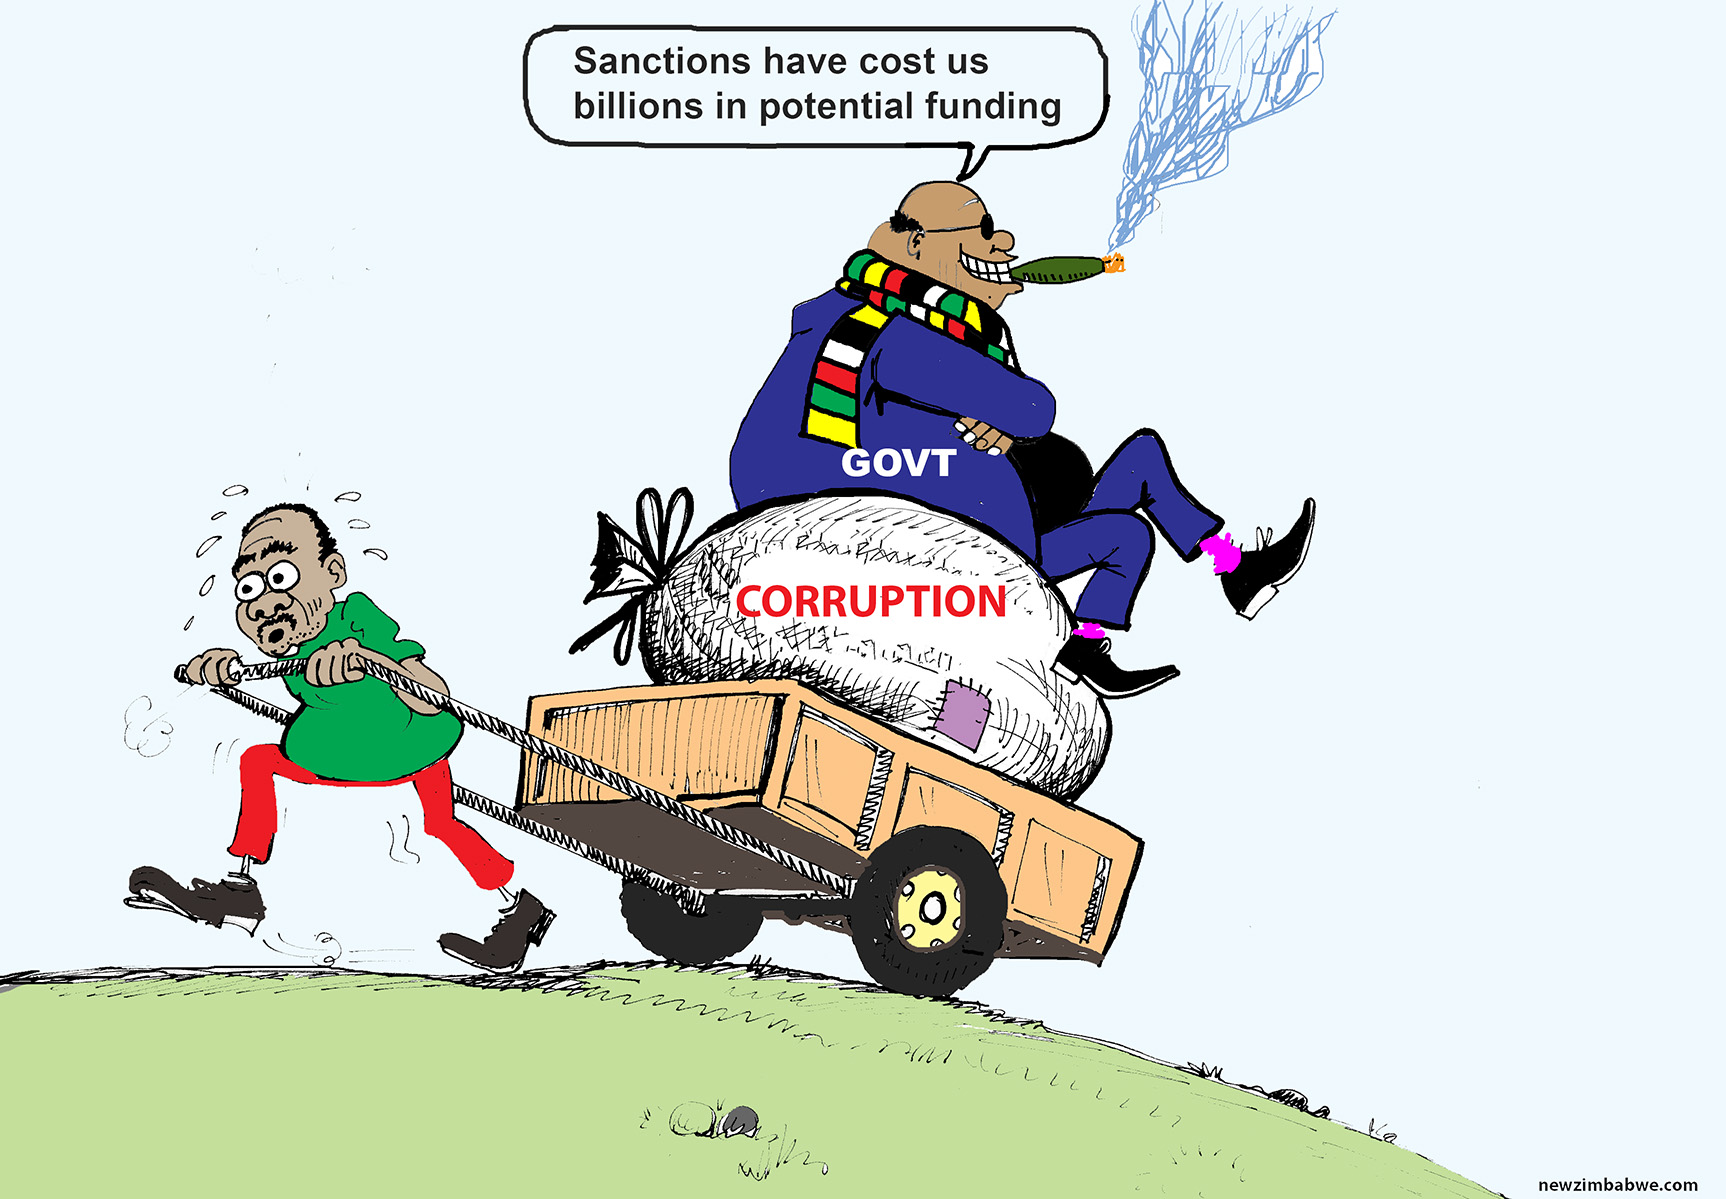 Sanctions cost Zim billions